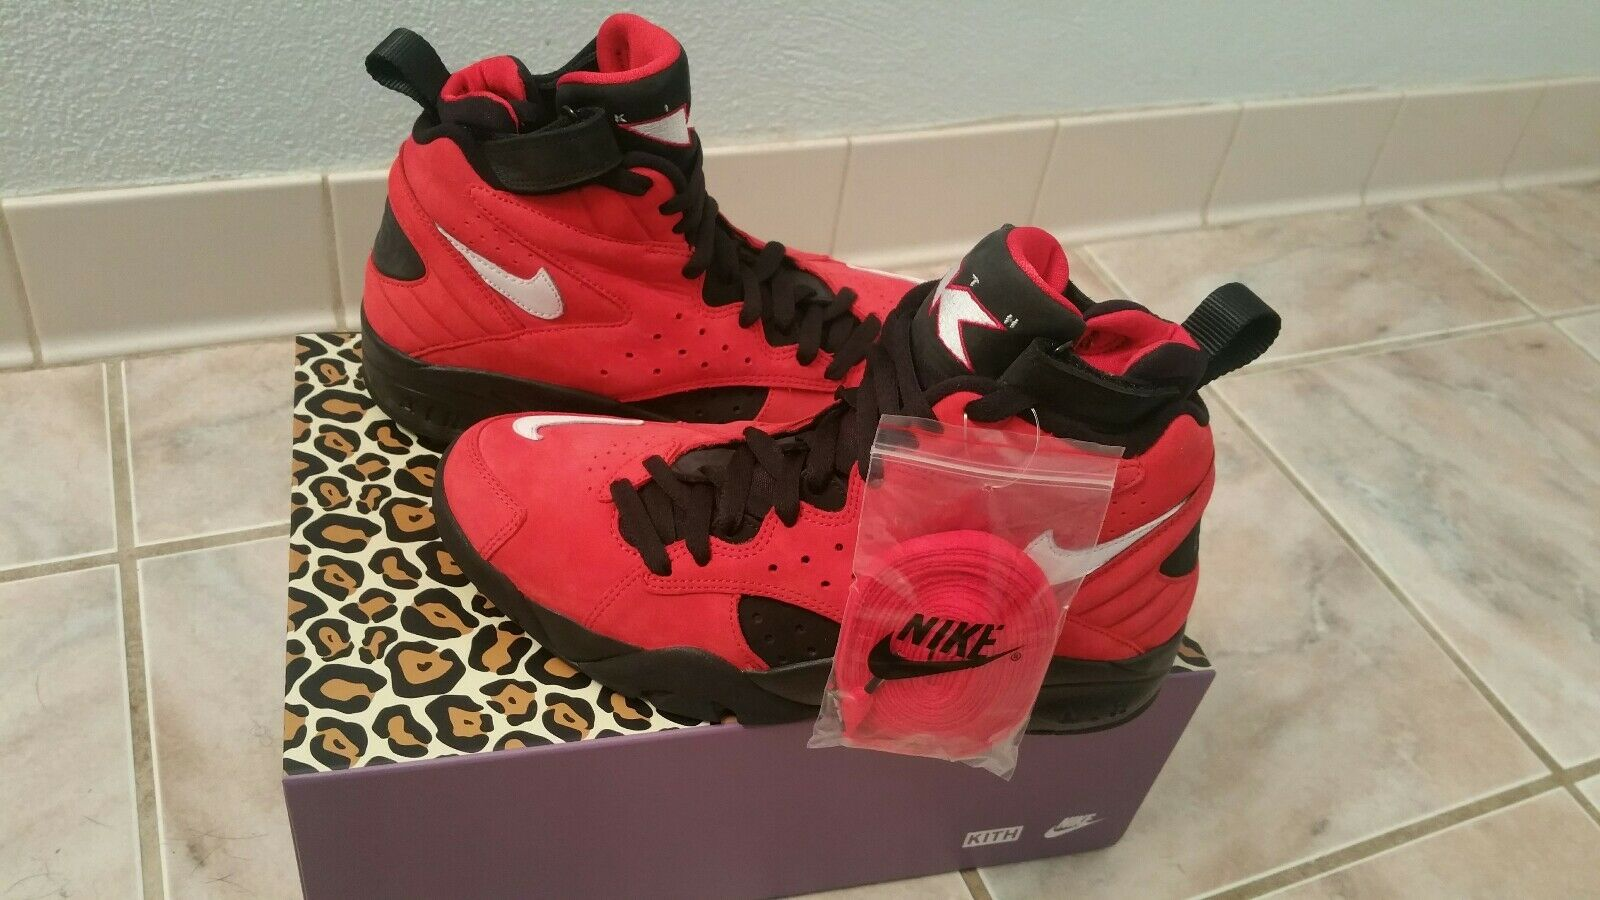 97c398fd9e KITH Nike Air II QS Red Black Size 7.5 Maestro University nxlqaw2474 ...